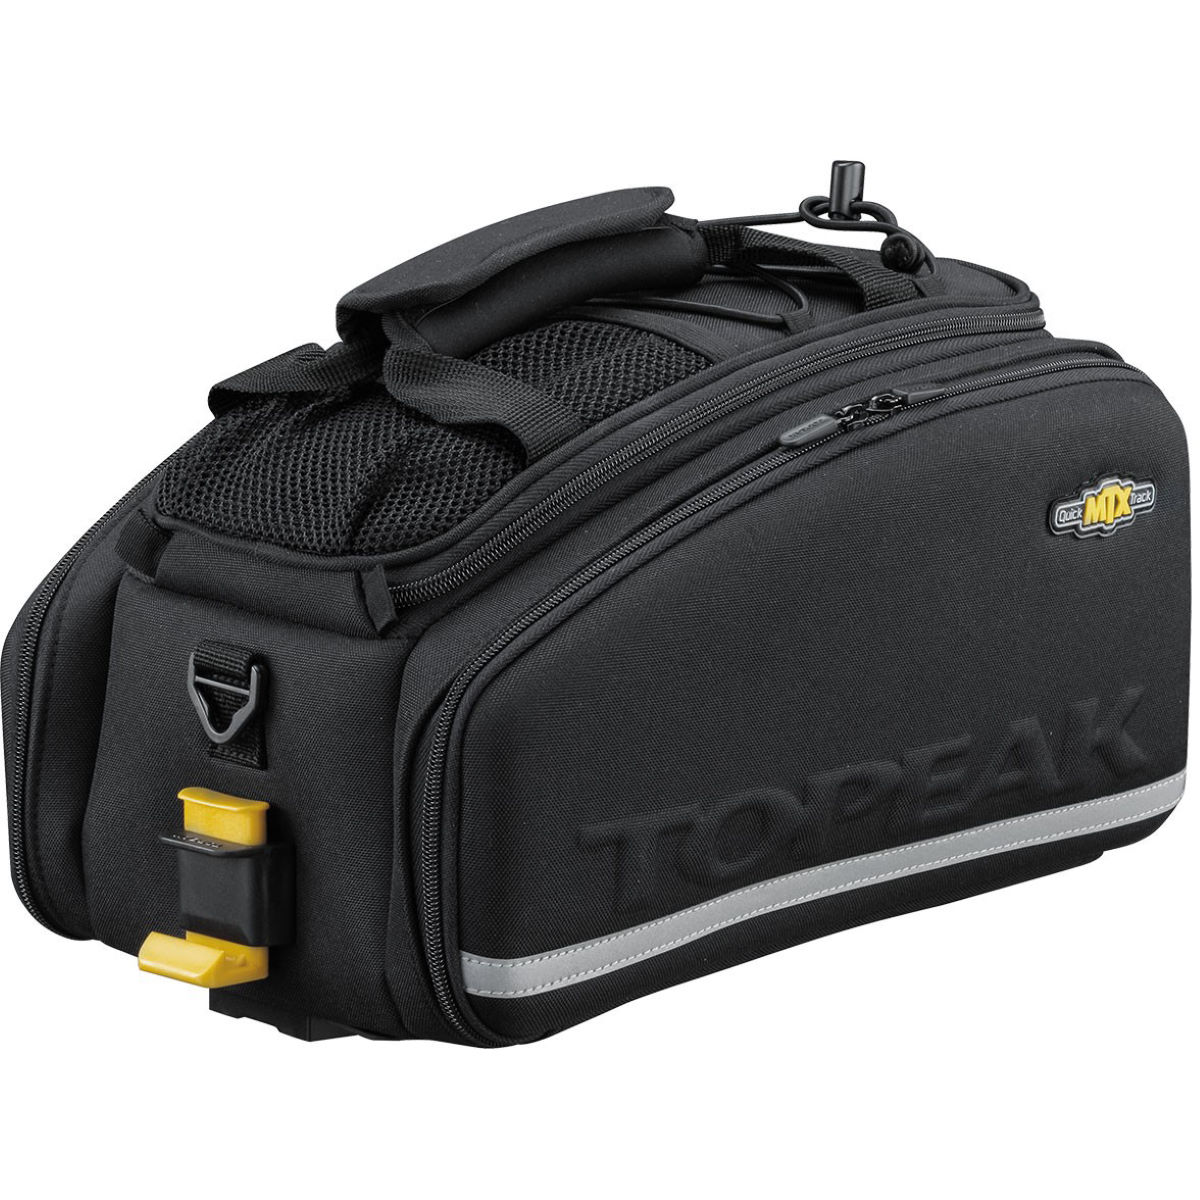 Topeak Topeak MTX Trunk Bag EXP   Rack Bags